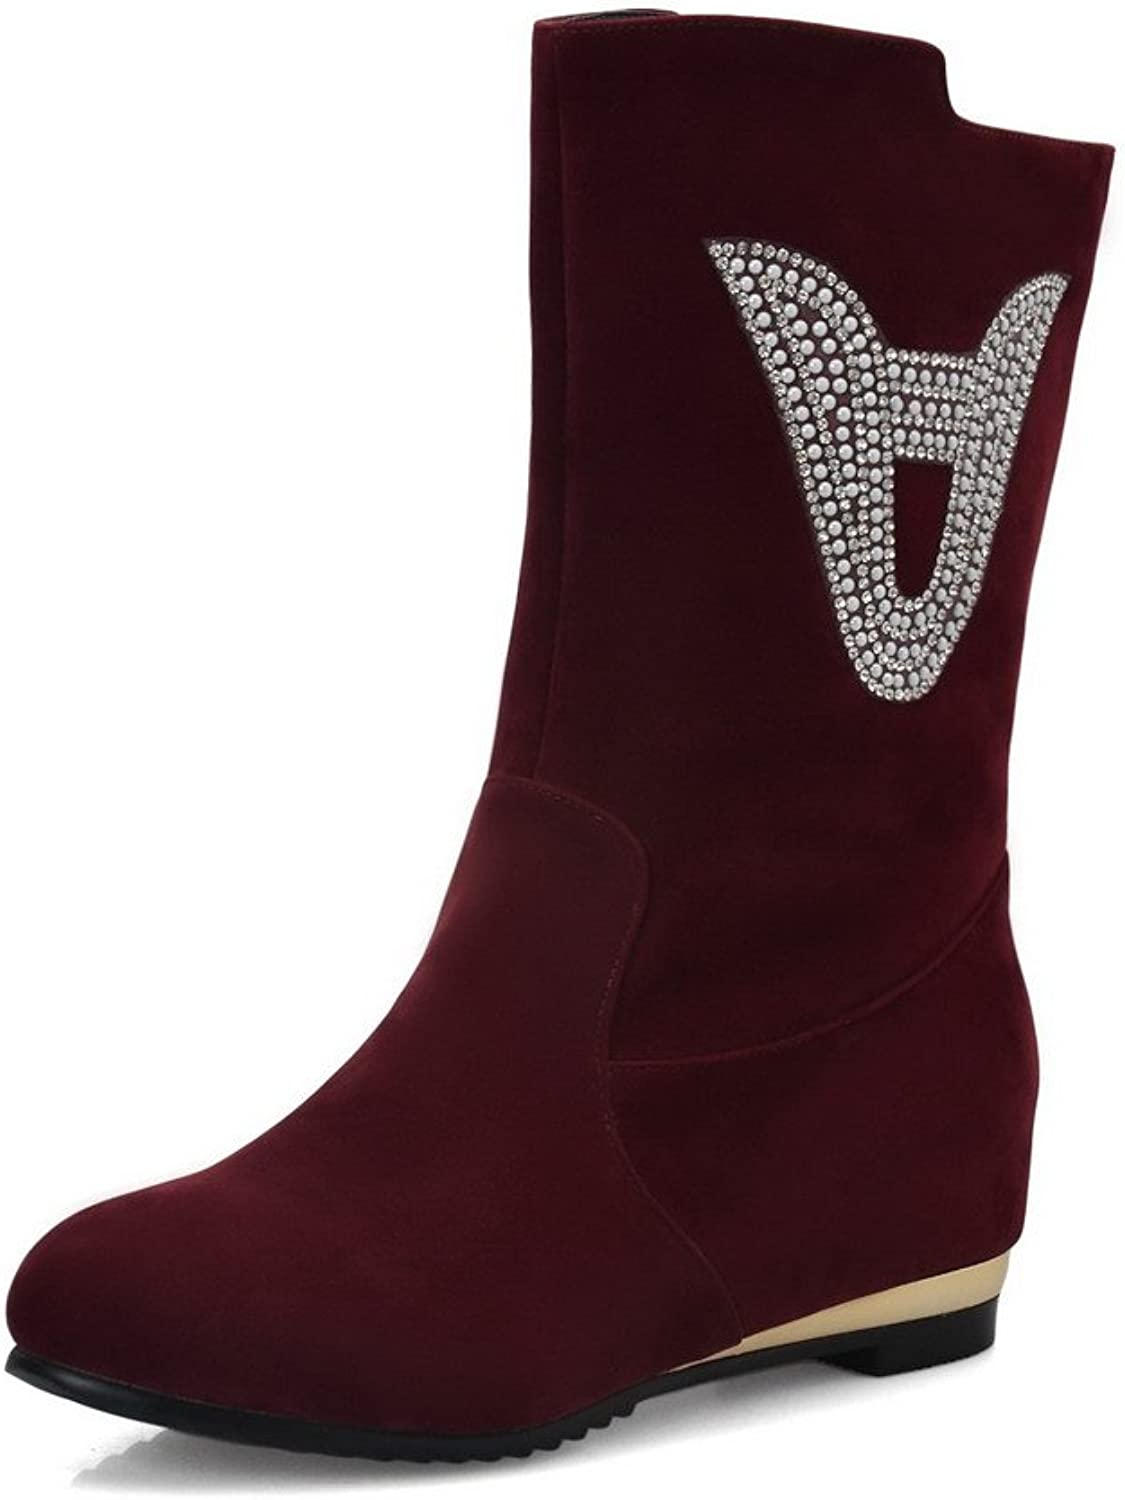 WeiPoot Women's Round Closed Toe PU Pull-on Low-Heels Mid-Calf Boots